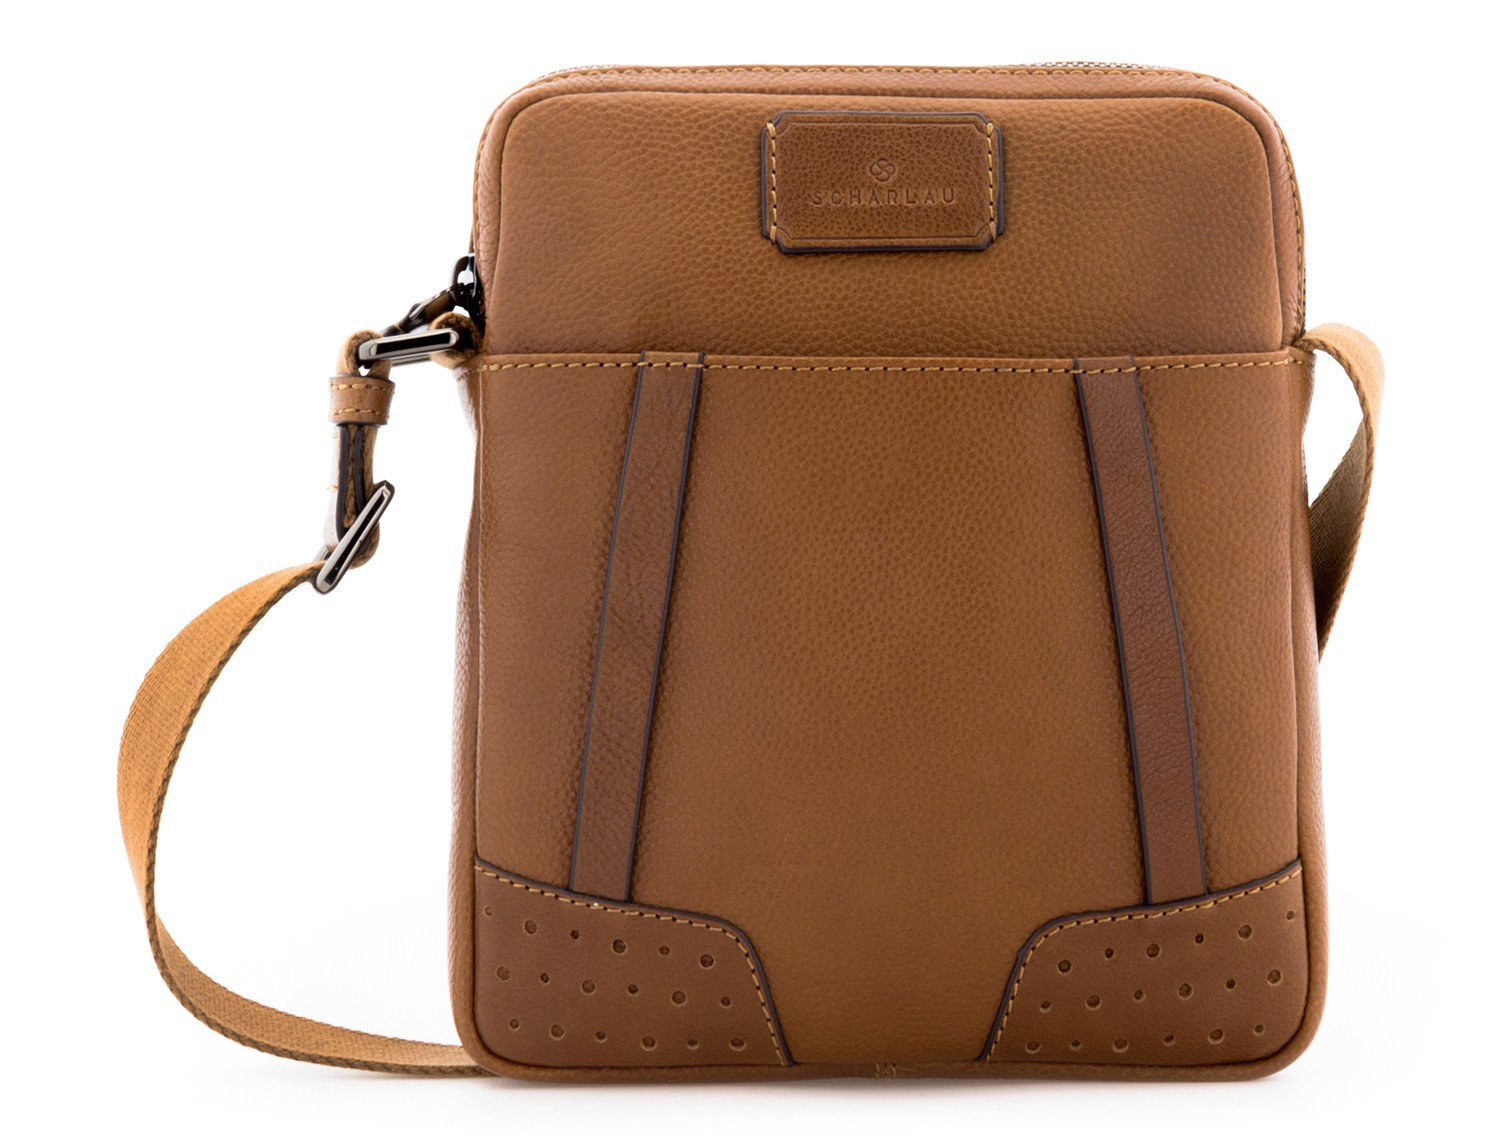 Leather cross body bag light brown front